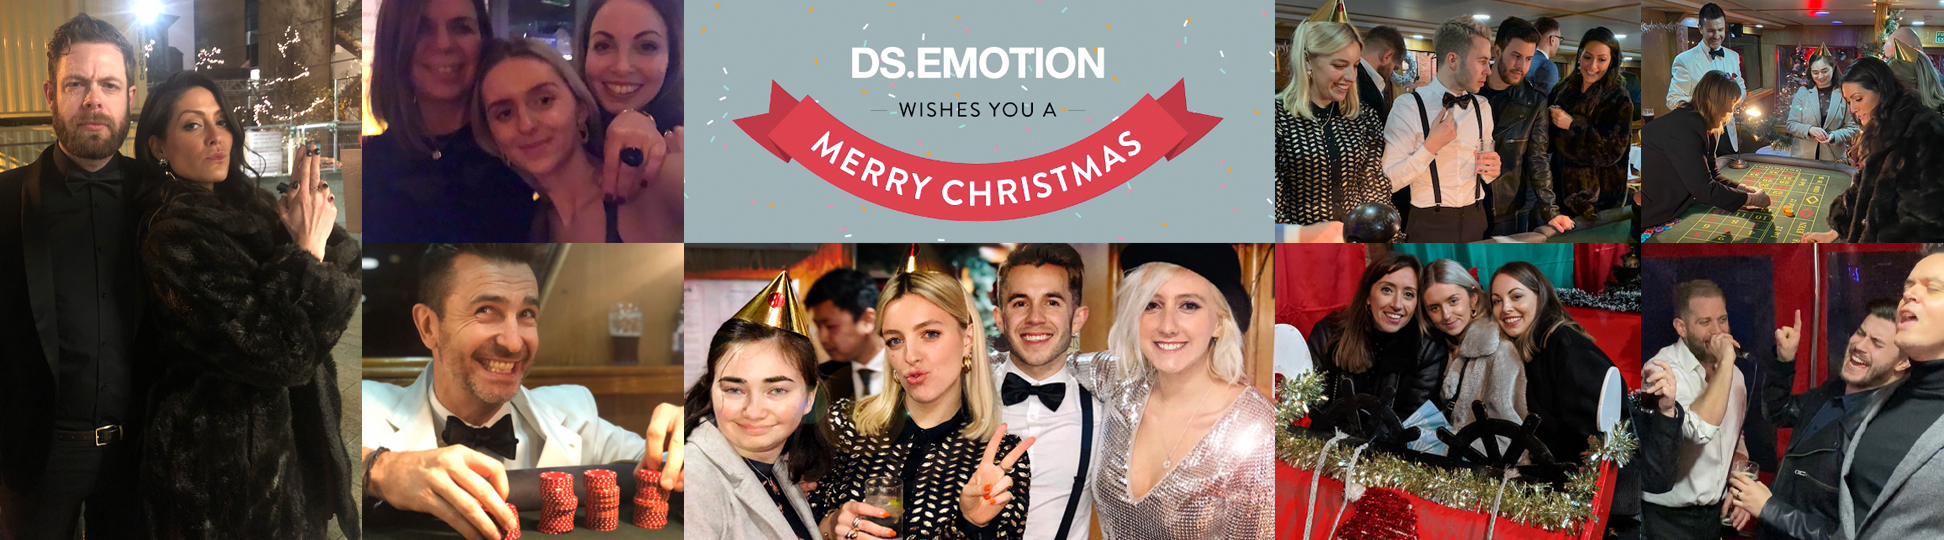 Boatloads of fun at the DS.Emotion Christmas Party